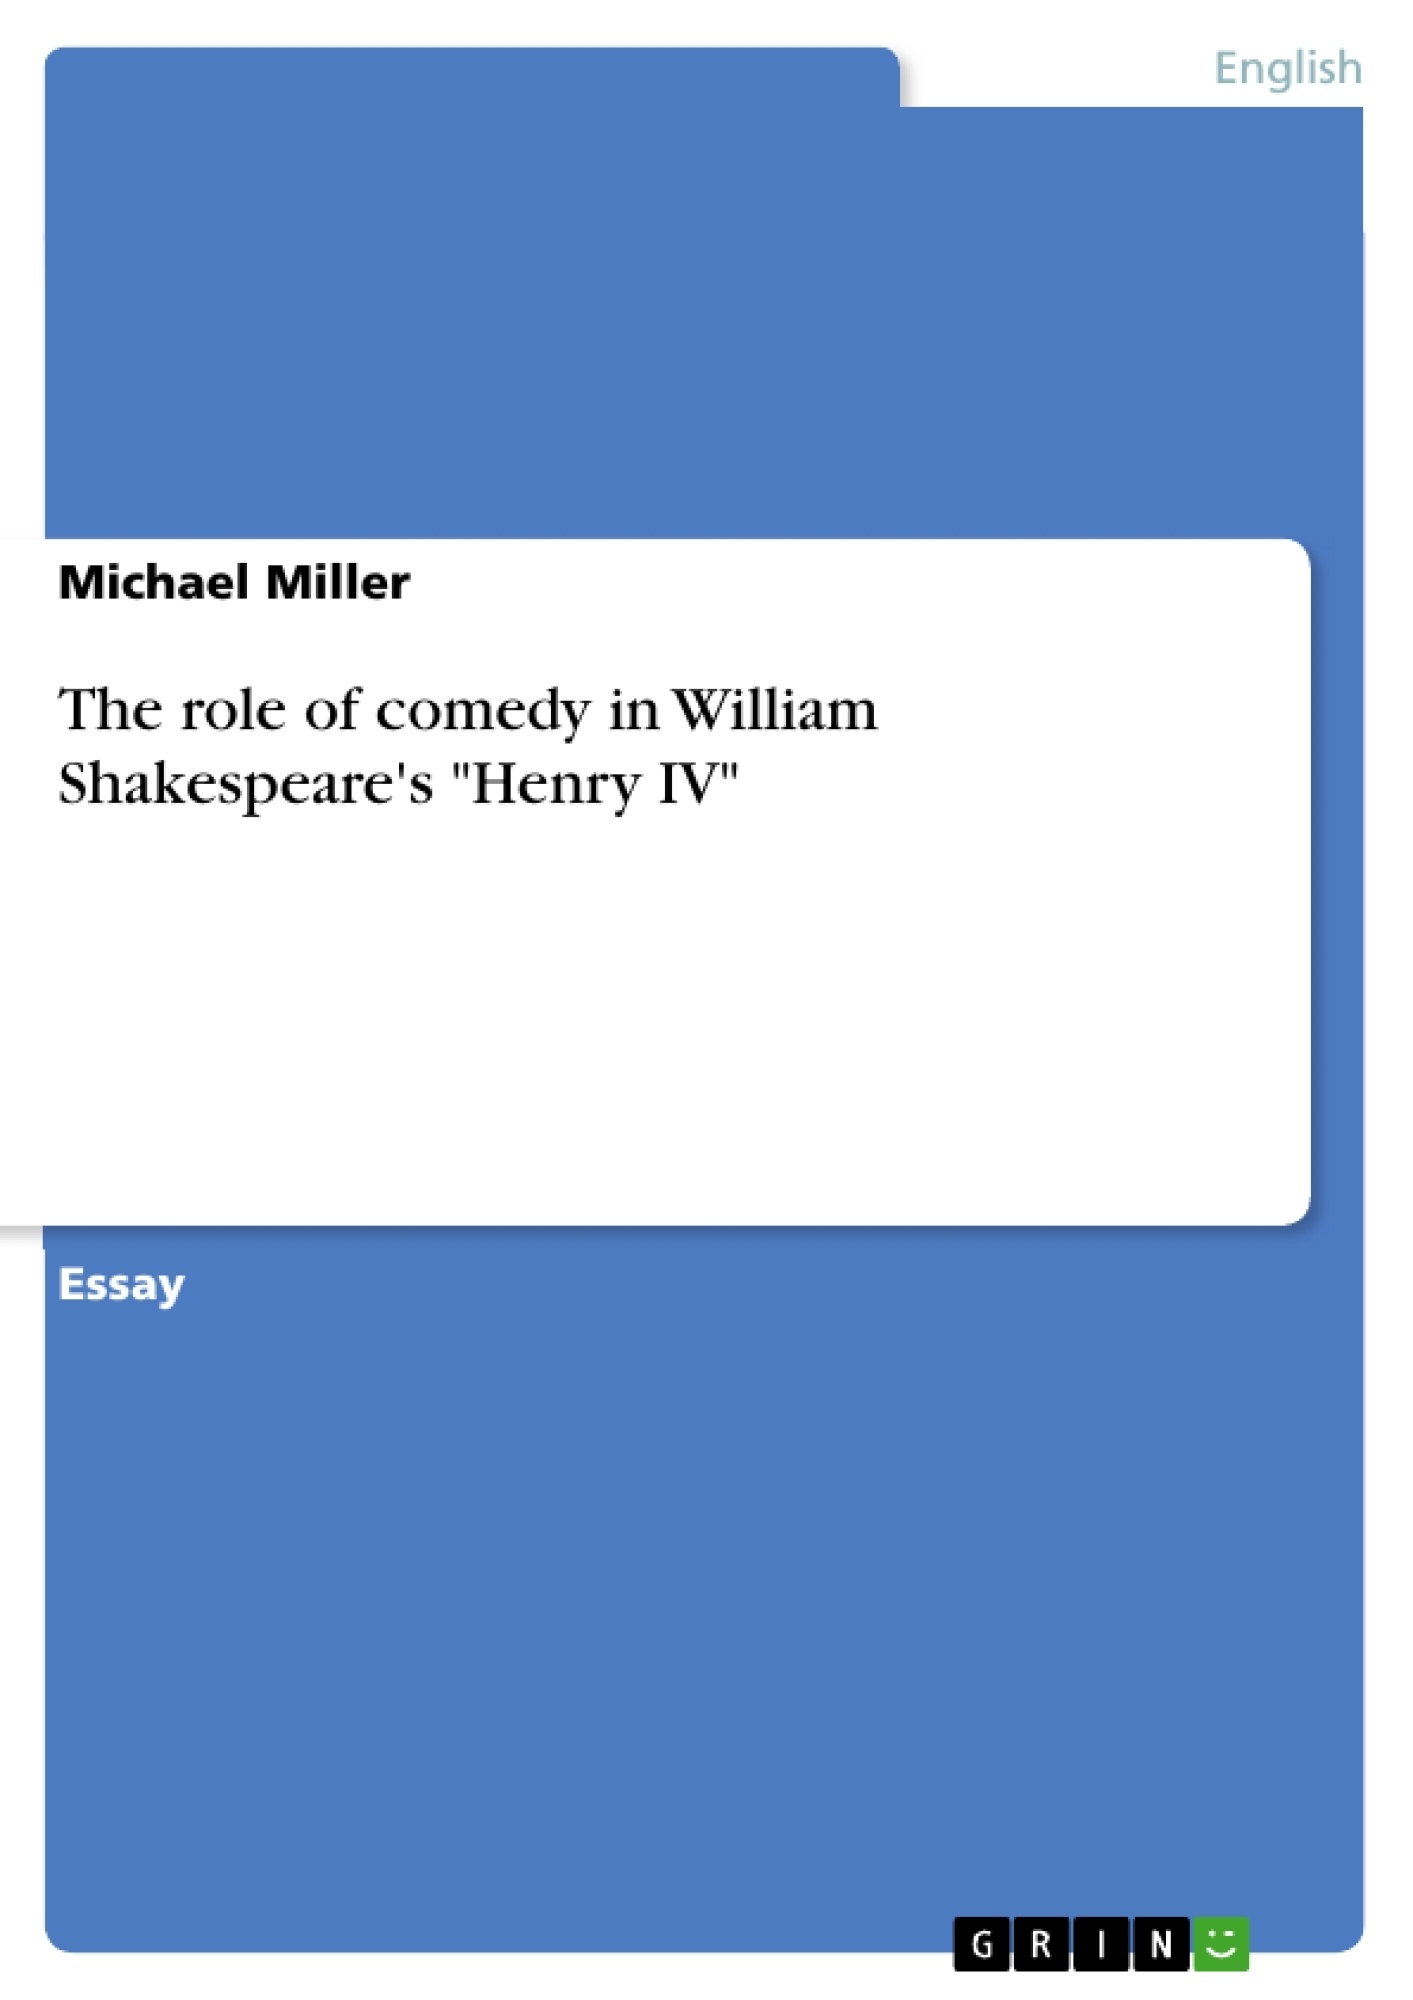 """Title: The role of comedy in William Shakespeare's """"Henry IV"""""""